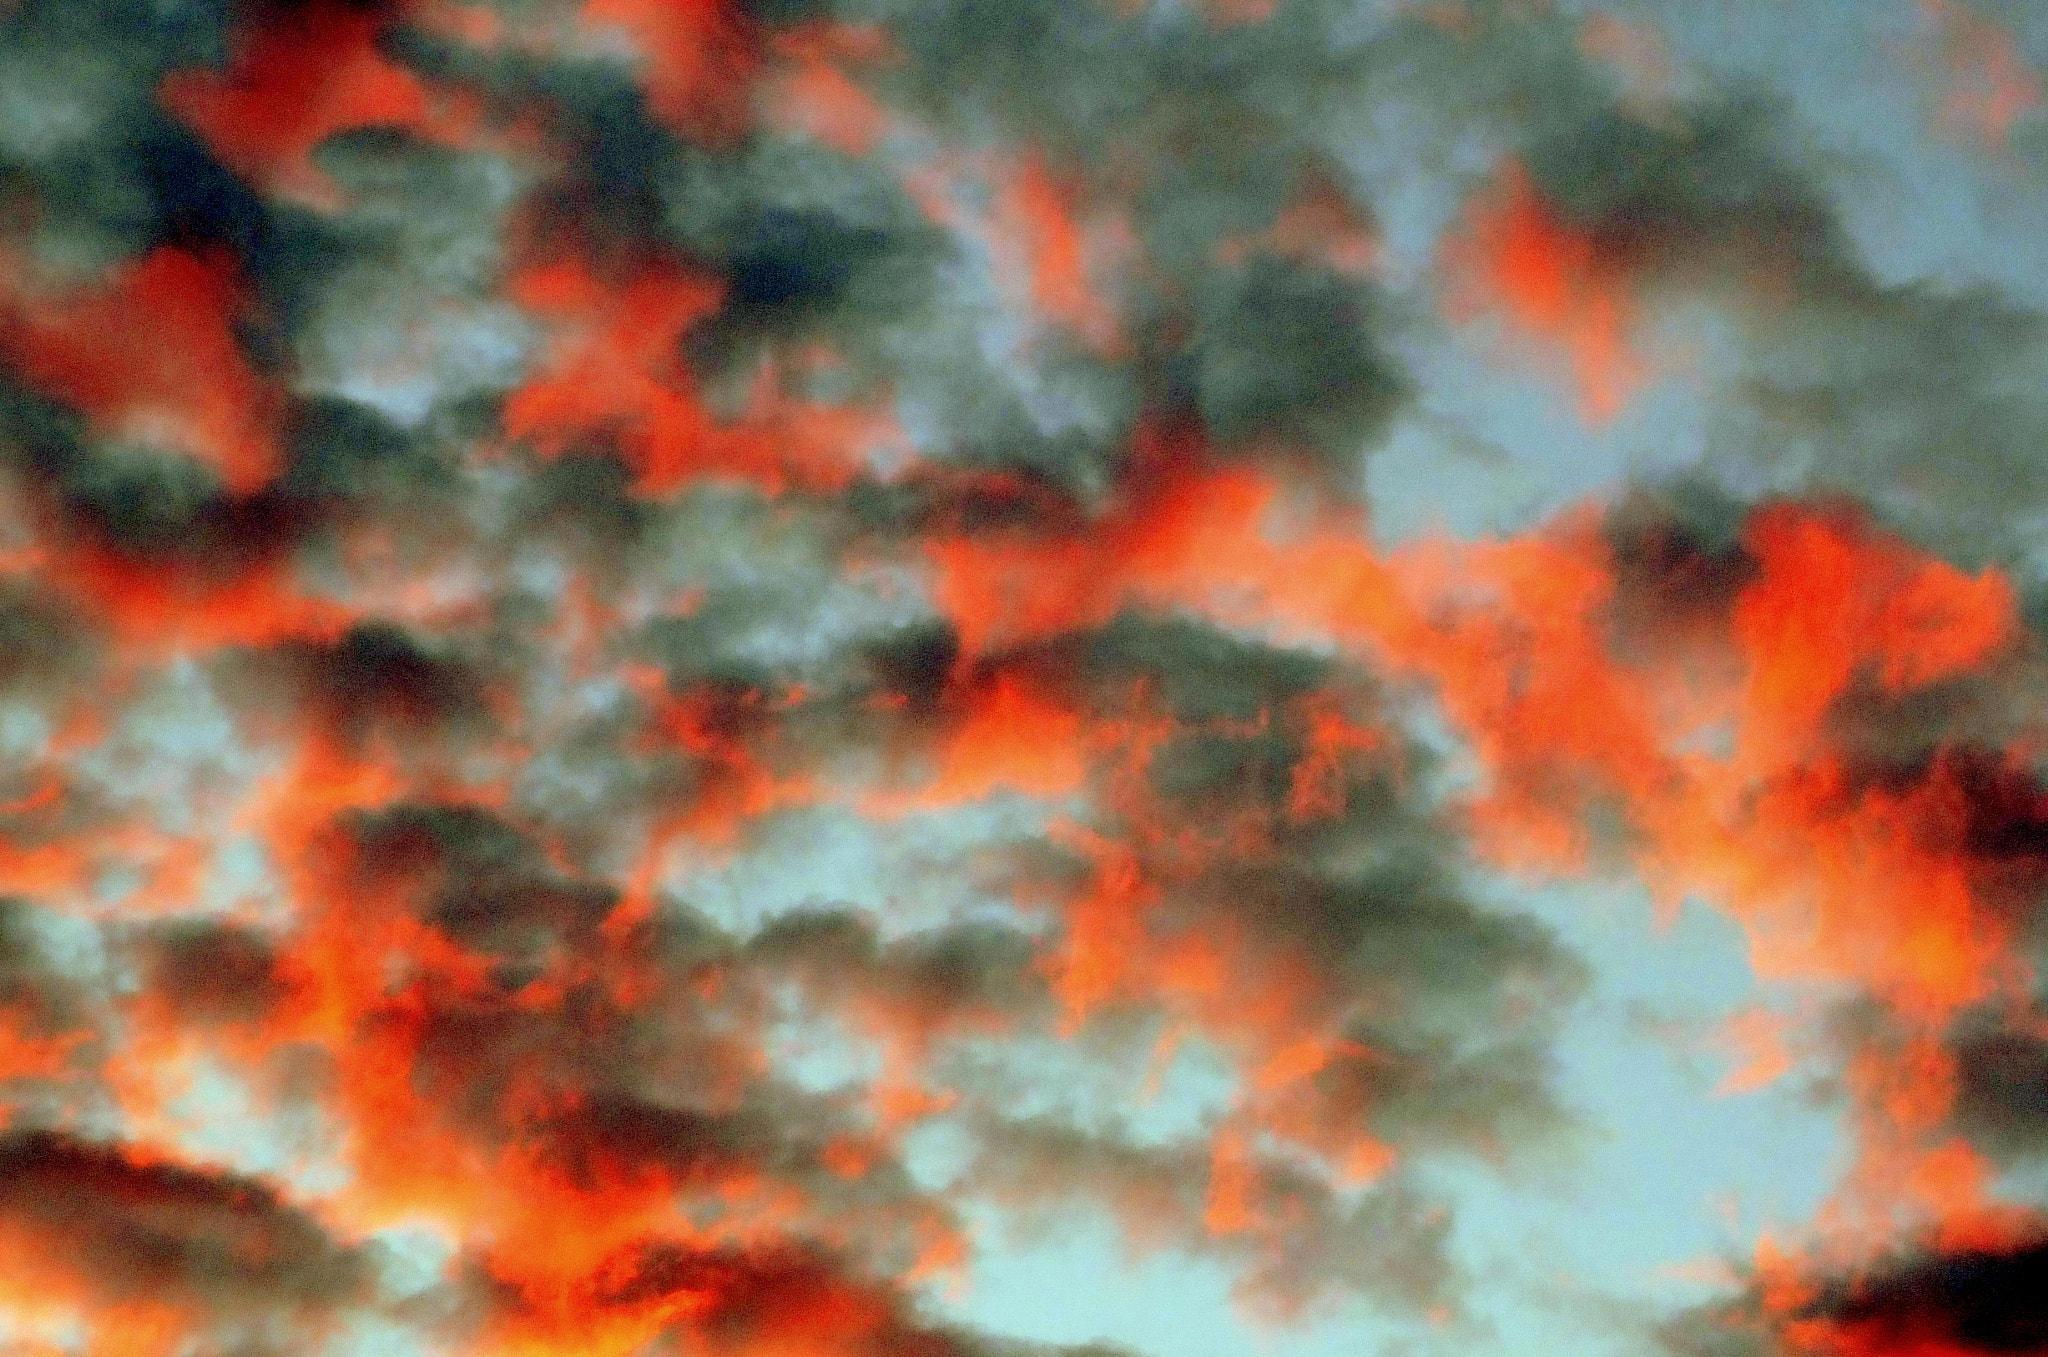 Photograph Fiery Clouds by Simon Wilson on 500px